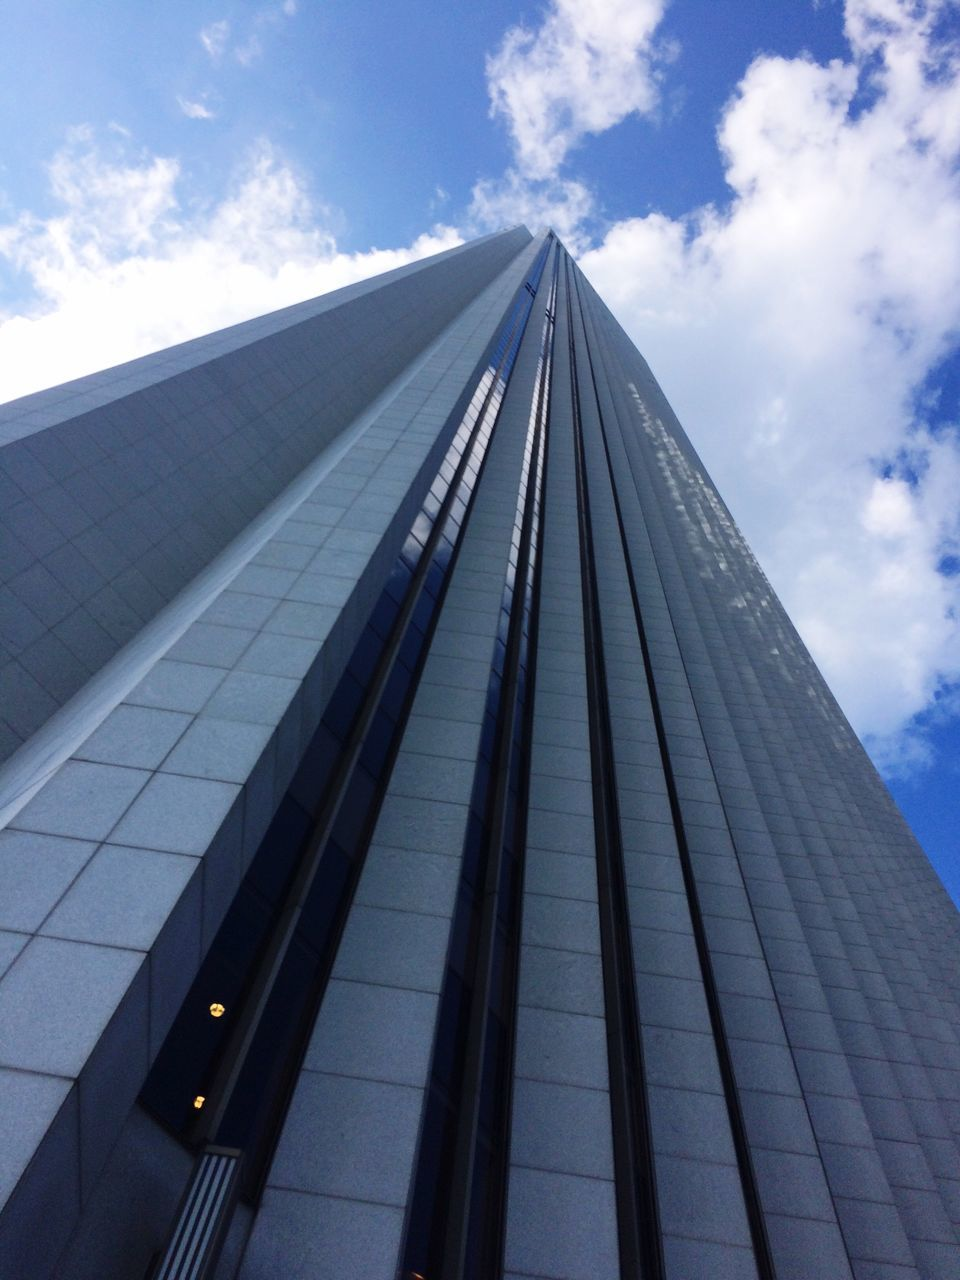 architecture, low angle view, built structure, sky, modern, building exterior, skyscraper, day, tall, outdoors, city, corporate business, growth, cloud - sky, no people, twin